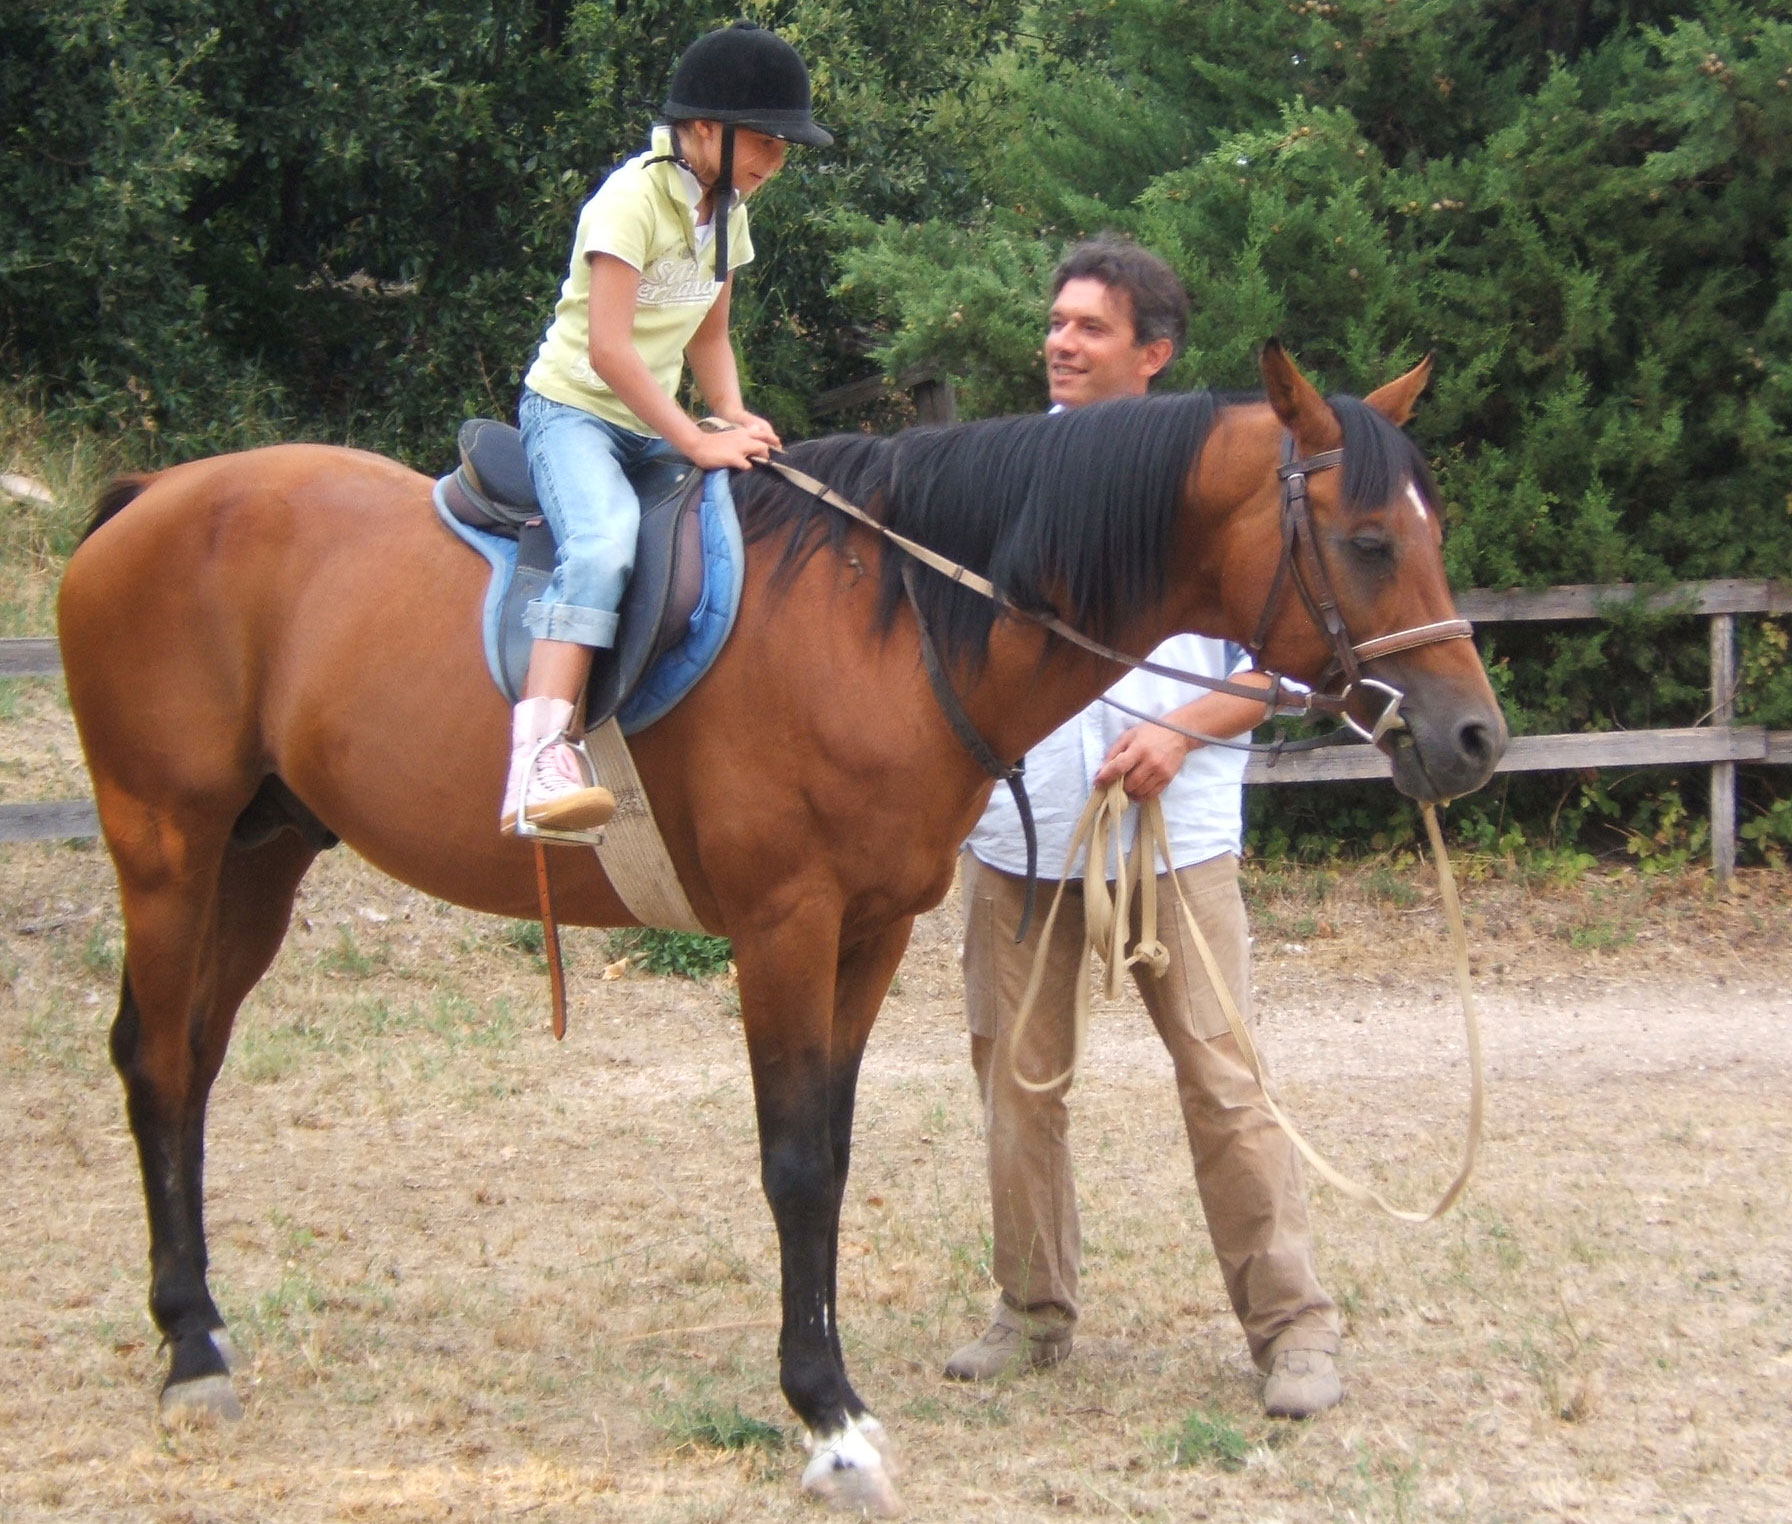 Horse back riding lessons just for kids at Caravanserraglio in Marche Italy